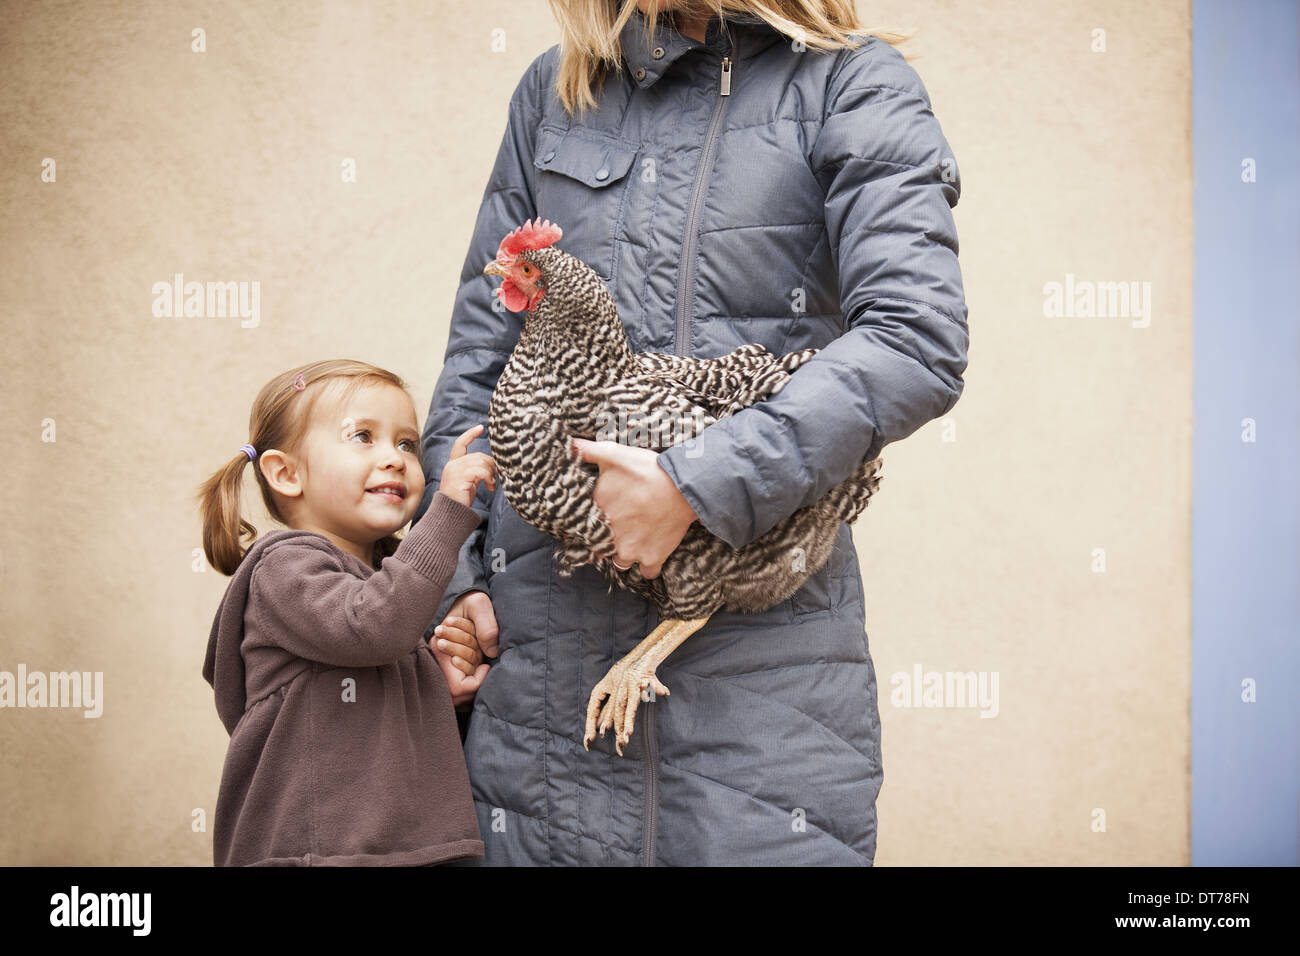 A woman in a grey coat holding chicken with a red coxcomb under one arm. A young girl beside her holding her other hand - Stock Image